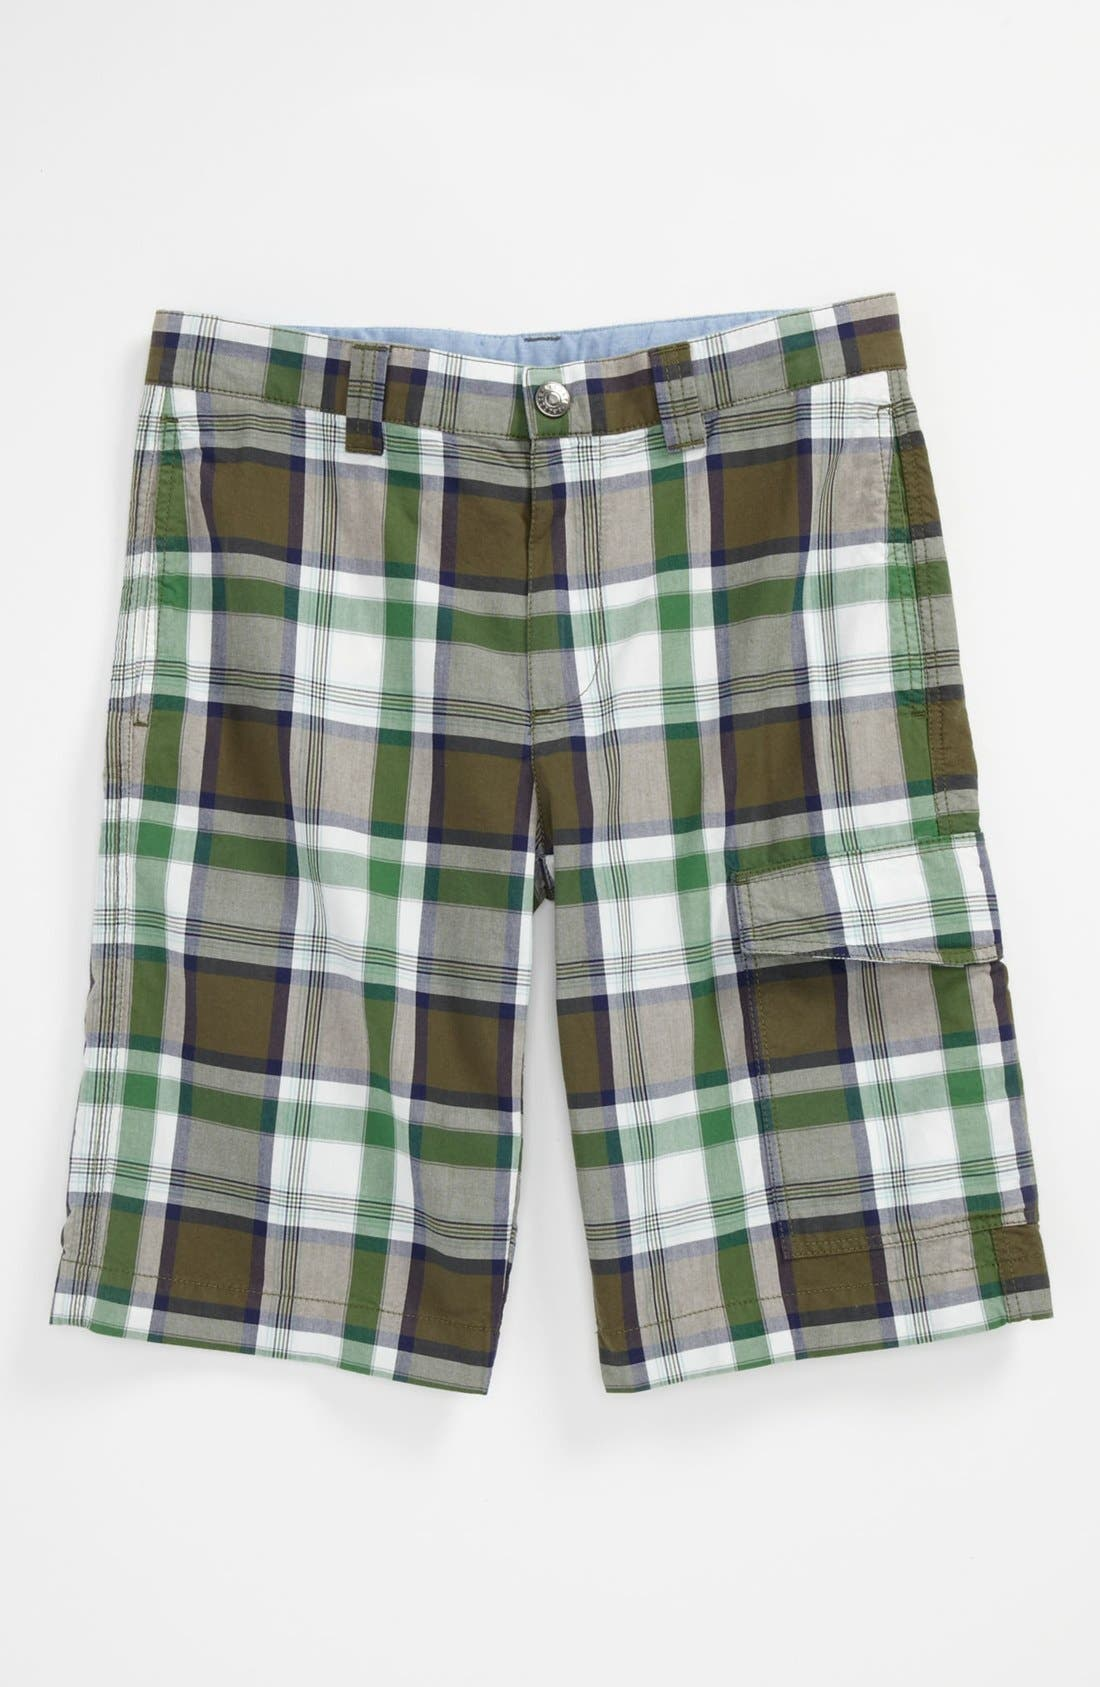 Alternate Image 1 Selected - Lacoste Bermuda Shorts (Big Boys)